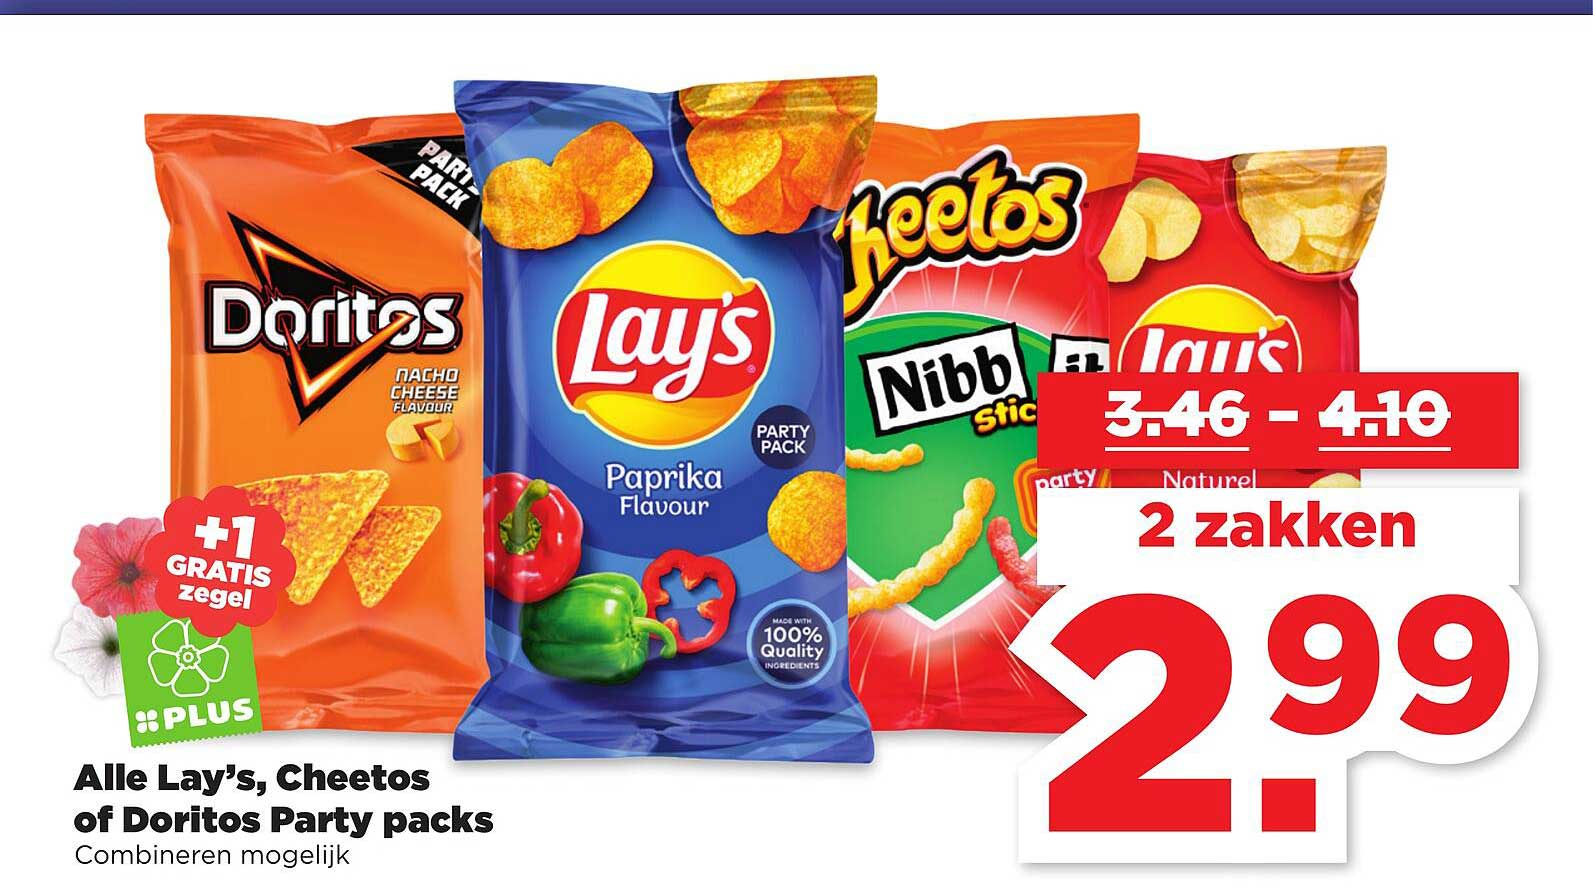 PLUS Alle Lay's, Cheetos Of Doritos Party Packs